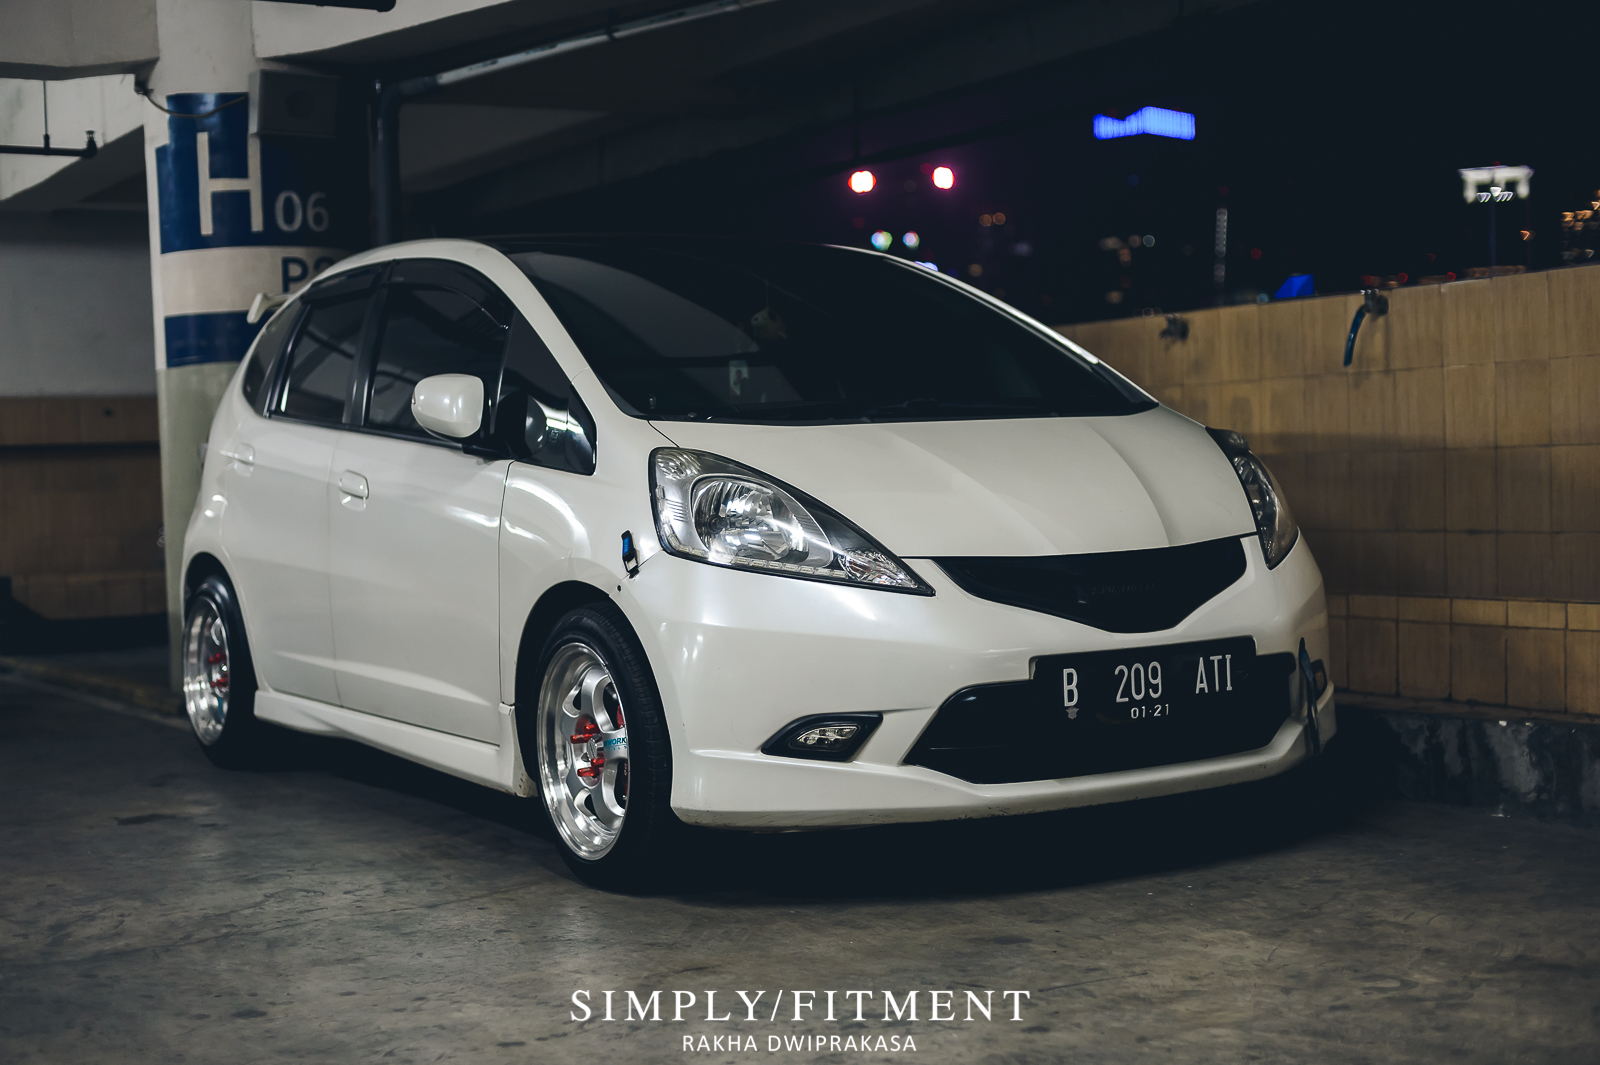 LOWFITMENT DAY 15 - DAY 2 (28 NOVEMBER 2020)